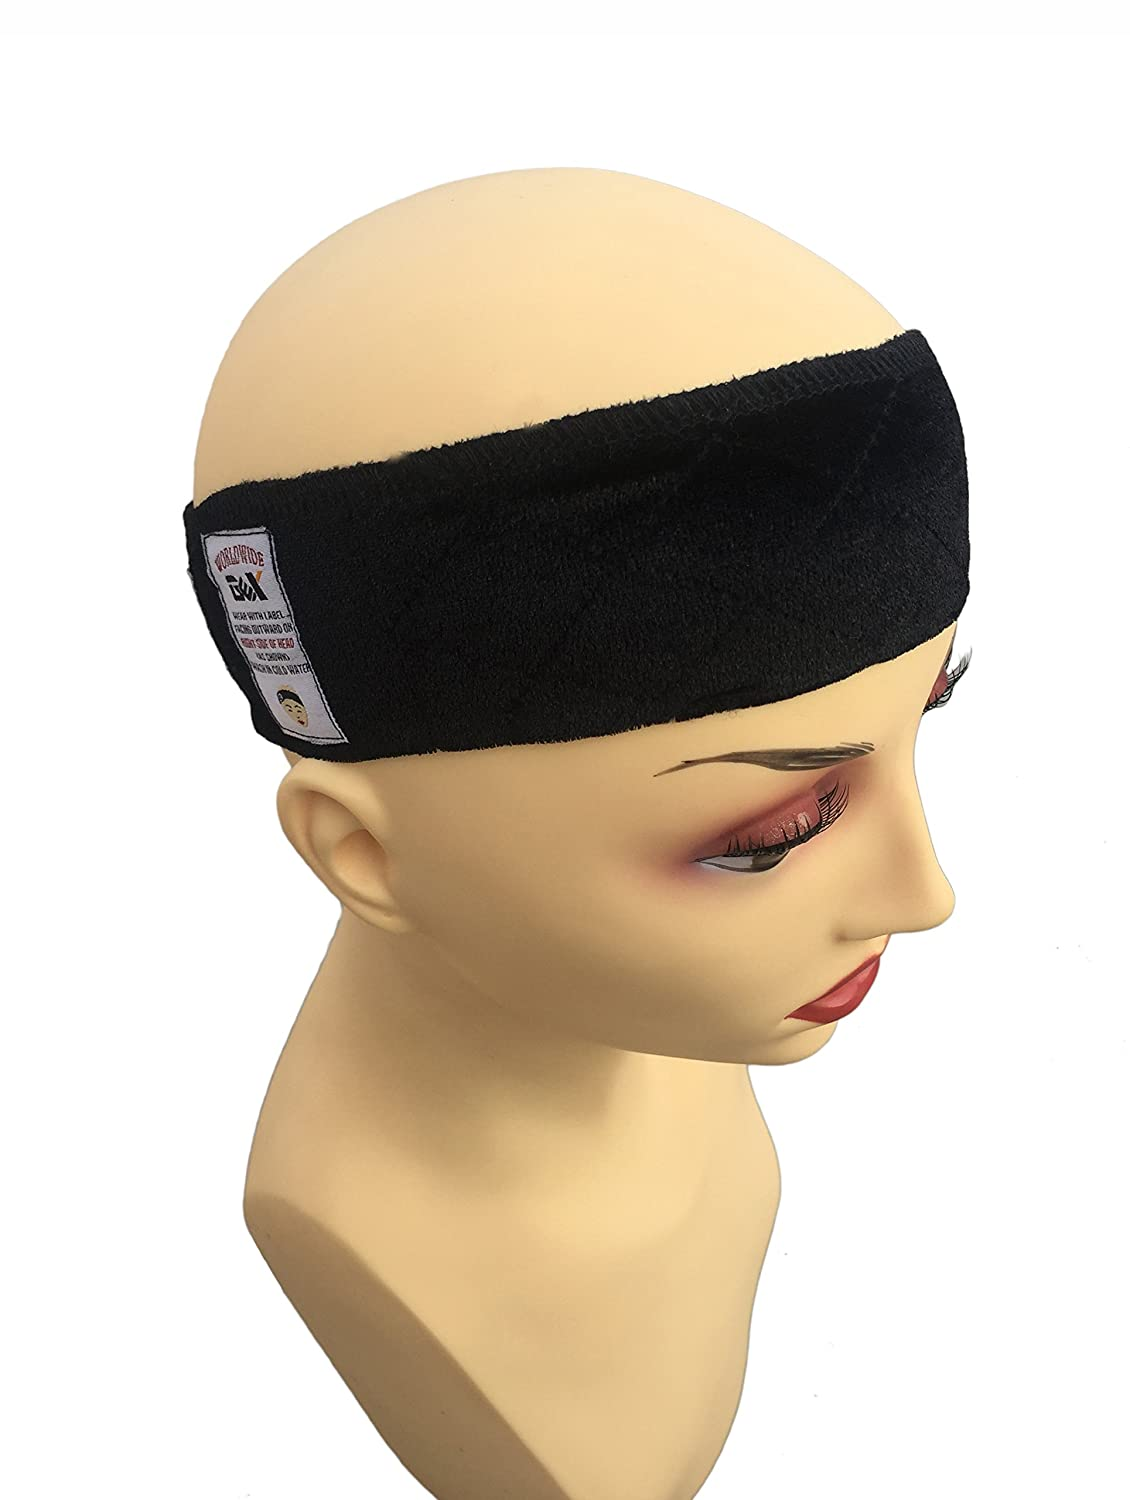 GEX Wig Grip Adjustable Elastic Comfort Headband Hook and Loop Fastener Adjustable Wig Band (Black) GEX Worldwide